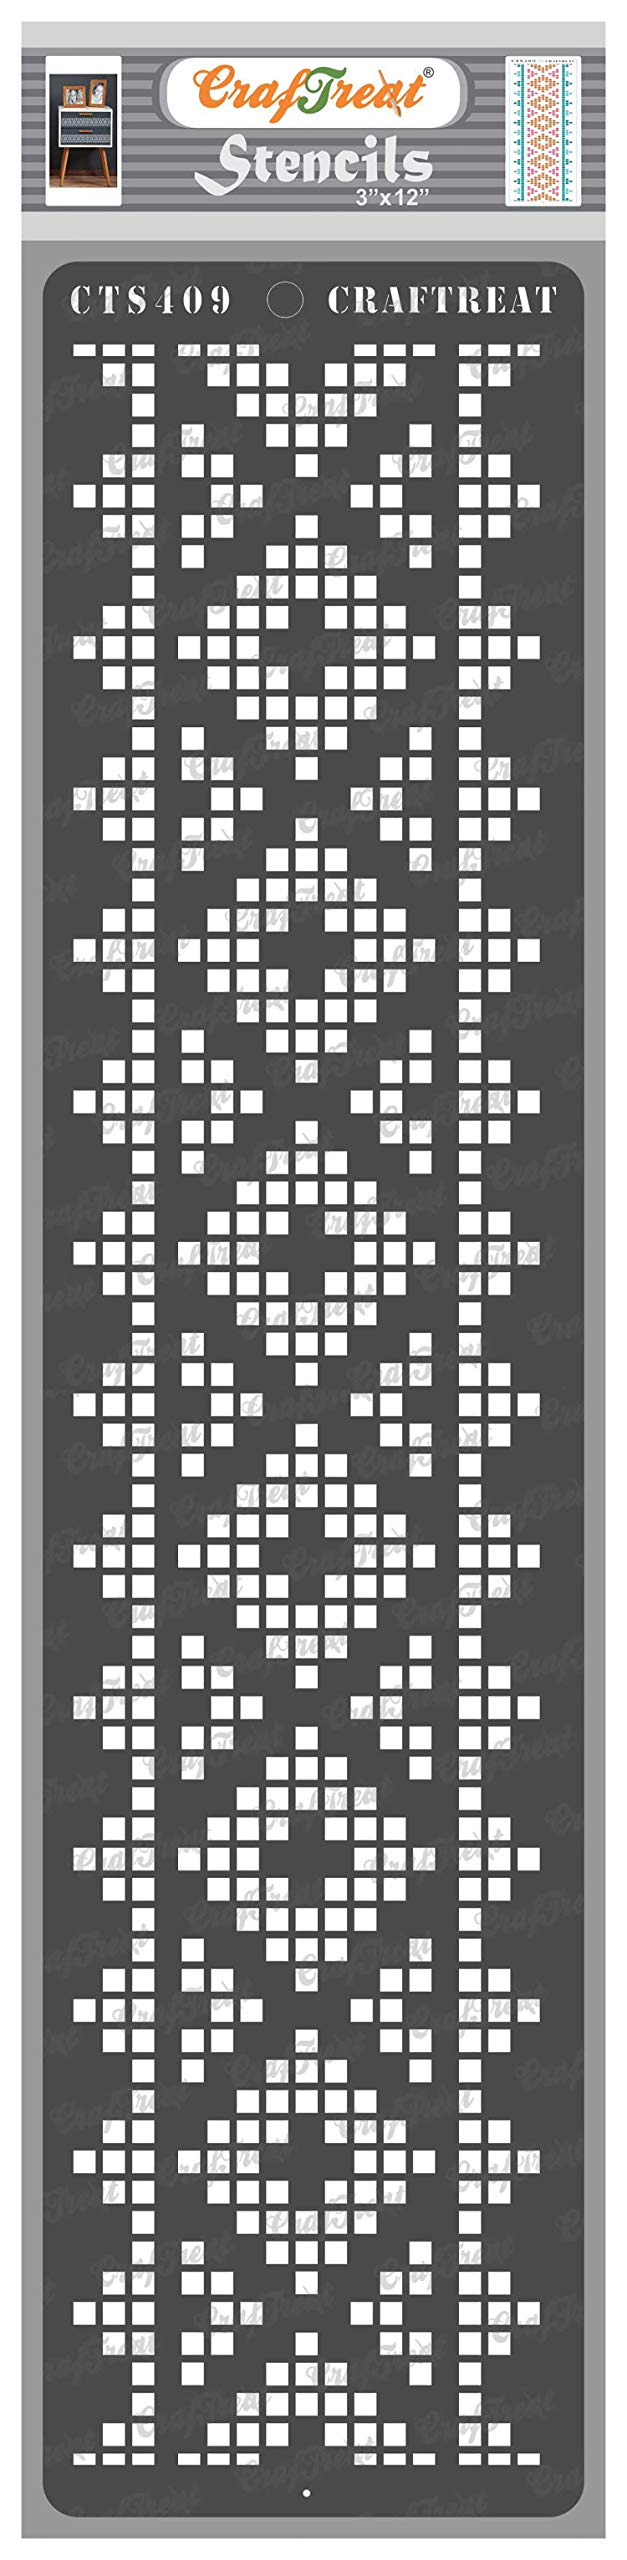 CrafTreat Dot Border Stencils for Painting on Wood, Canvas, Paper, Fabric, Floor, Wall and Tile - Border17-3x12 Inches - Reusable DIY Art and Craft Stencils for Borders - Border Quilt Stencil